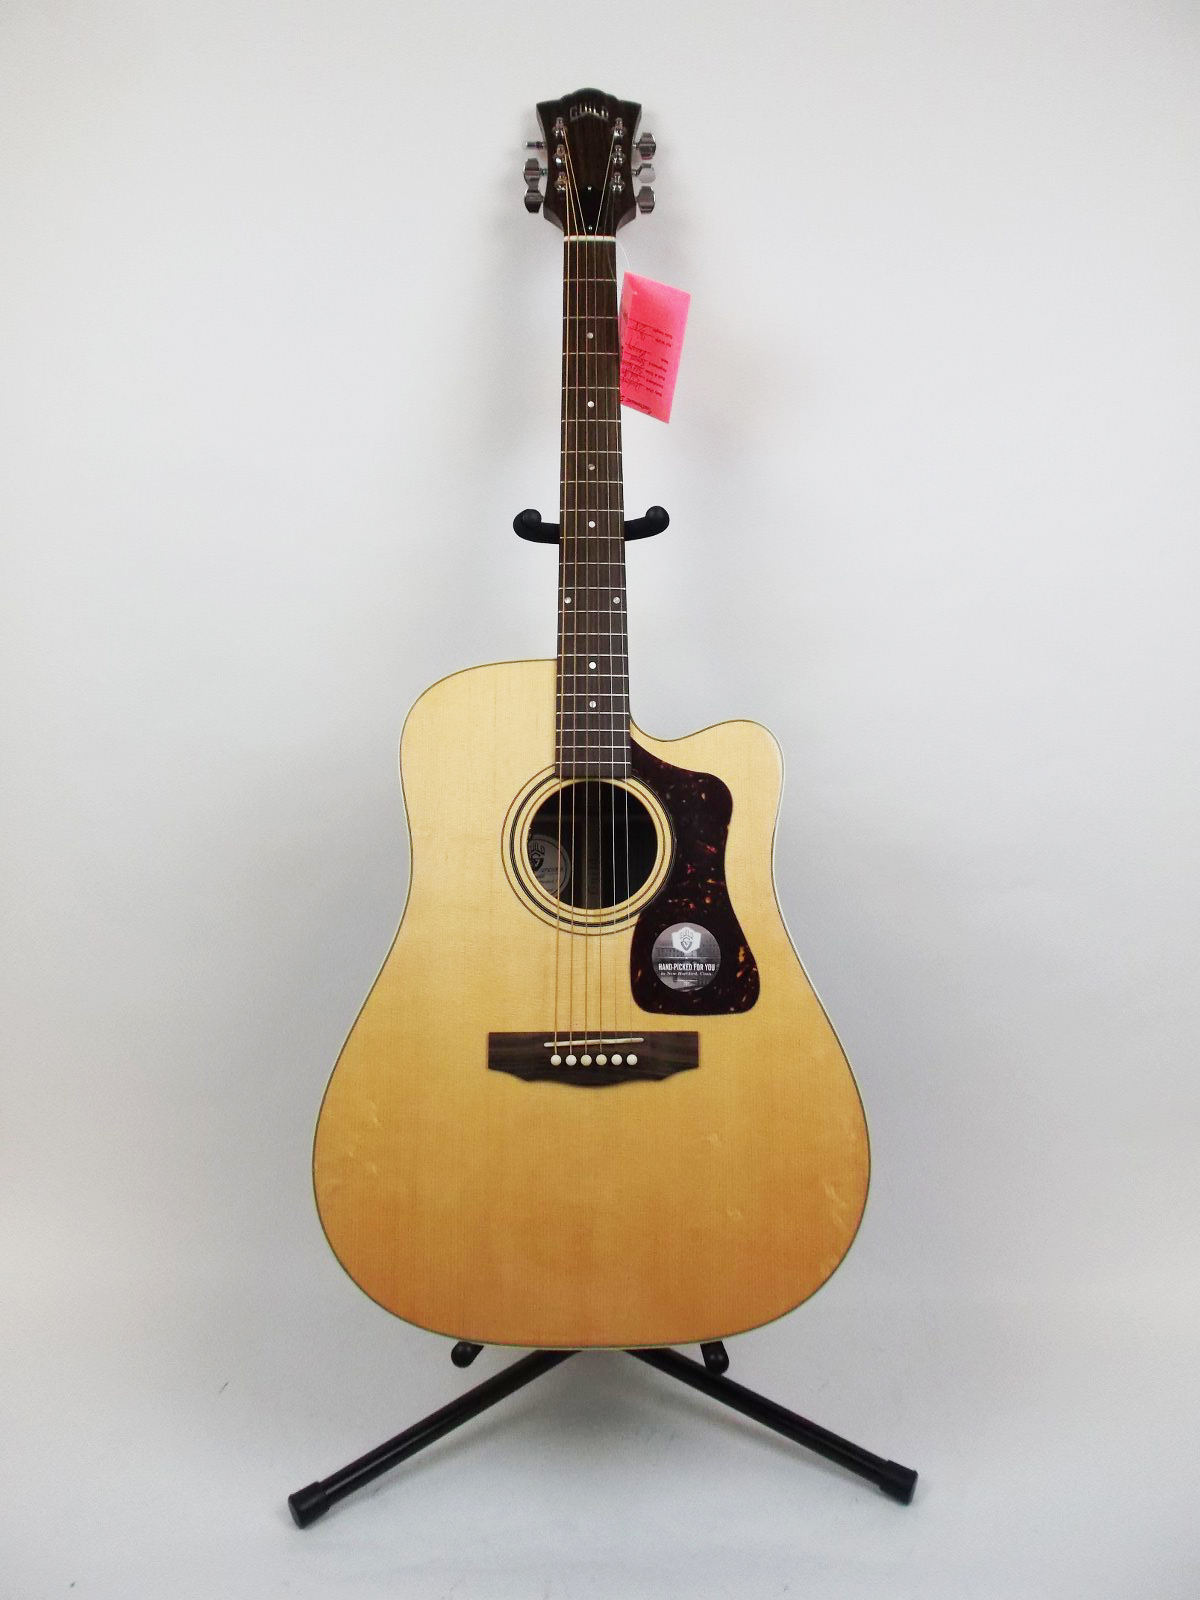 guild d 50ce acoustic electric guitar with case. Black Bedroom Furniture Sets. Home Design Ideas